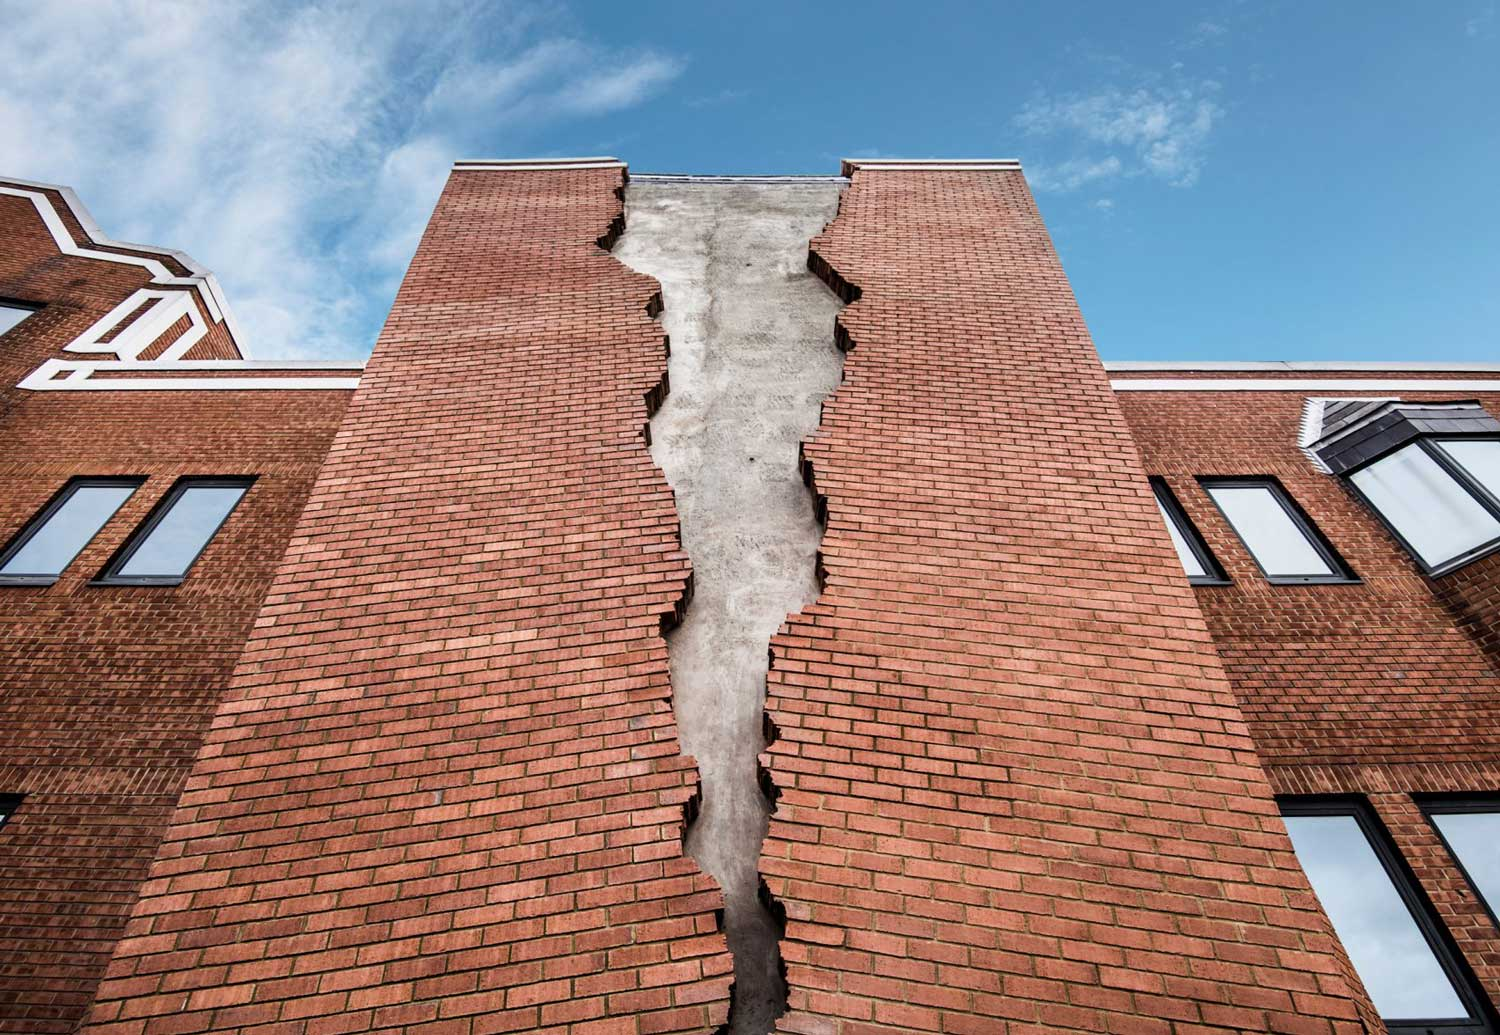 Six Pins and half a dozen needles by Alex Chinneck | Yellowtrace